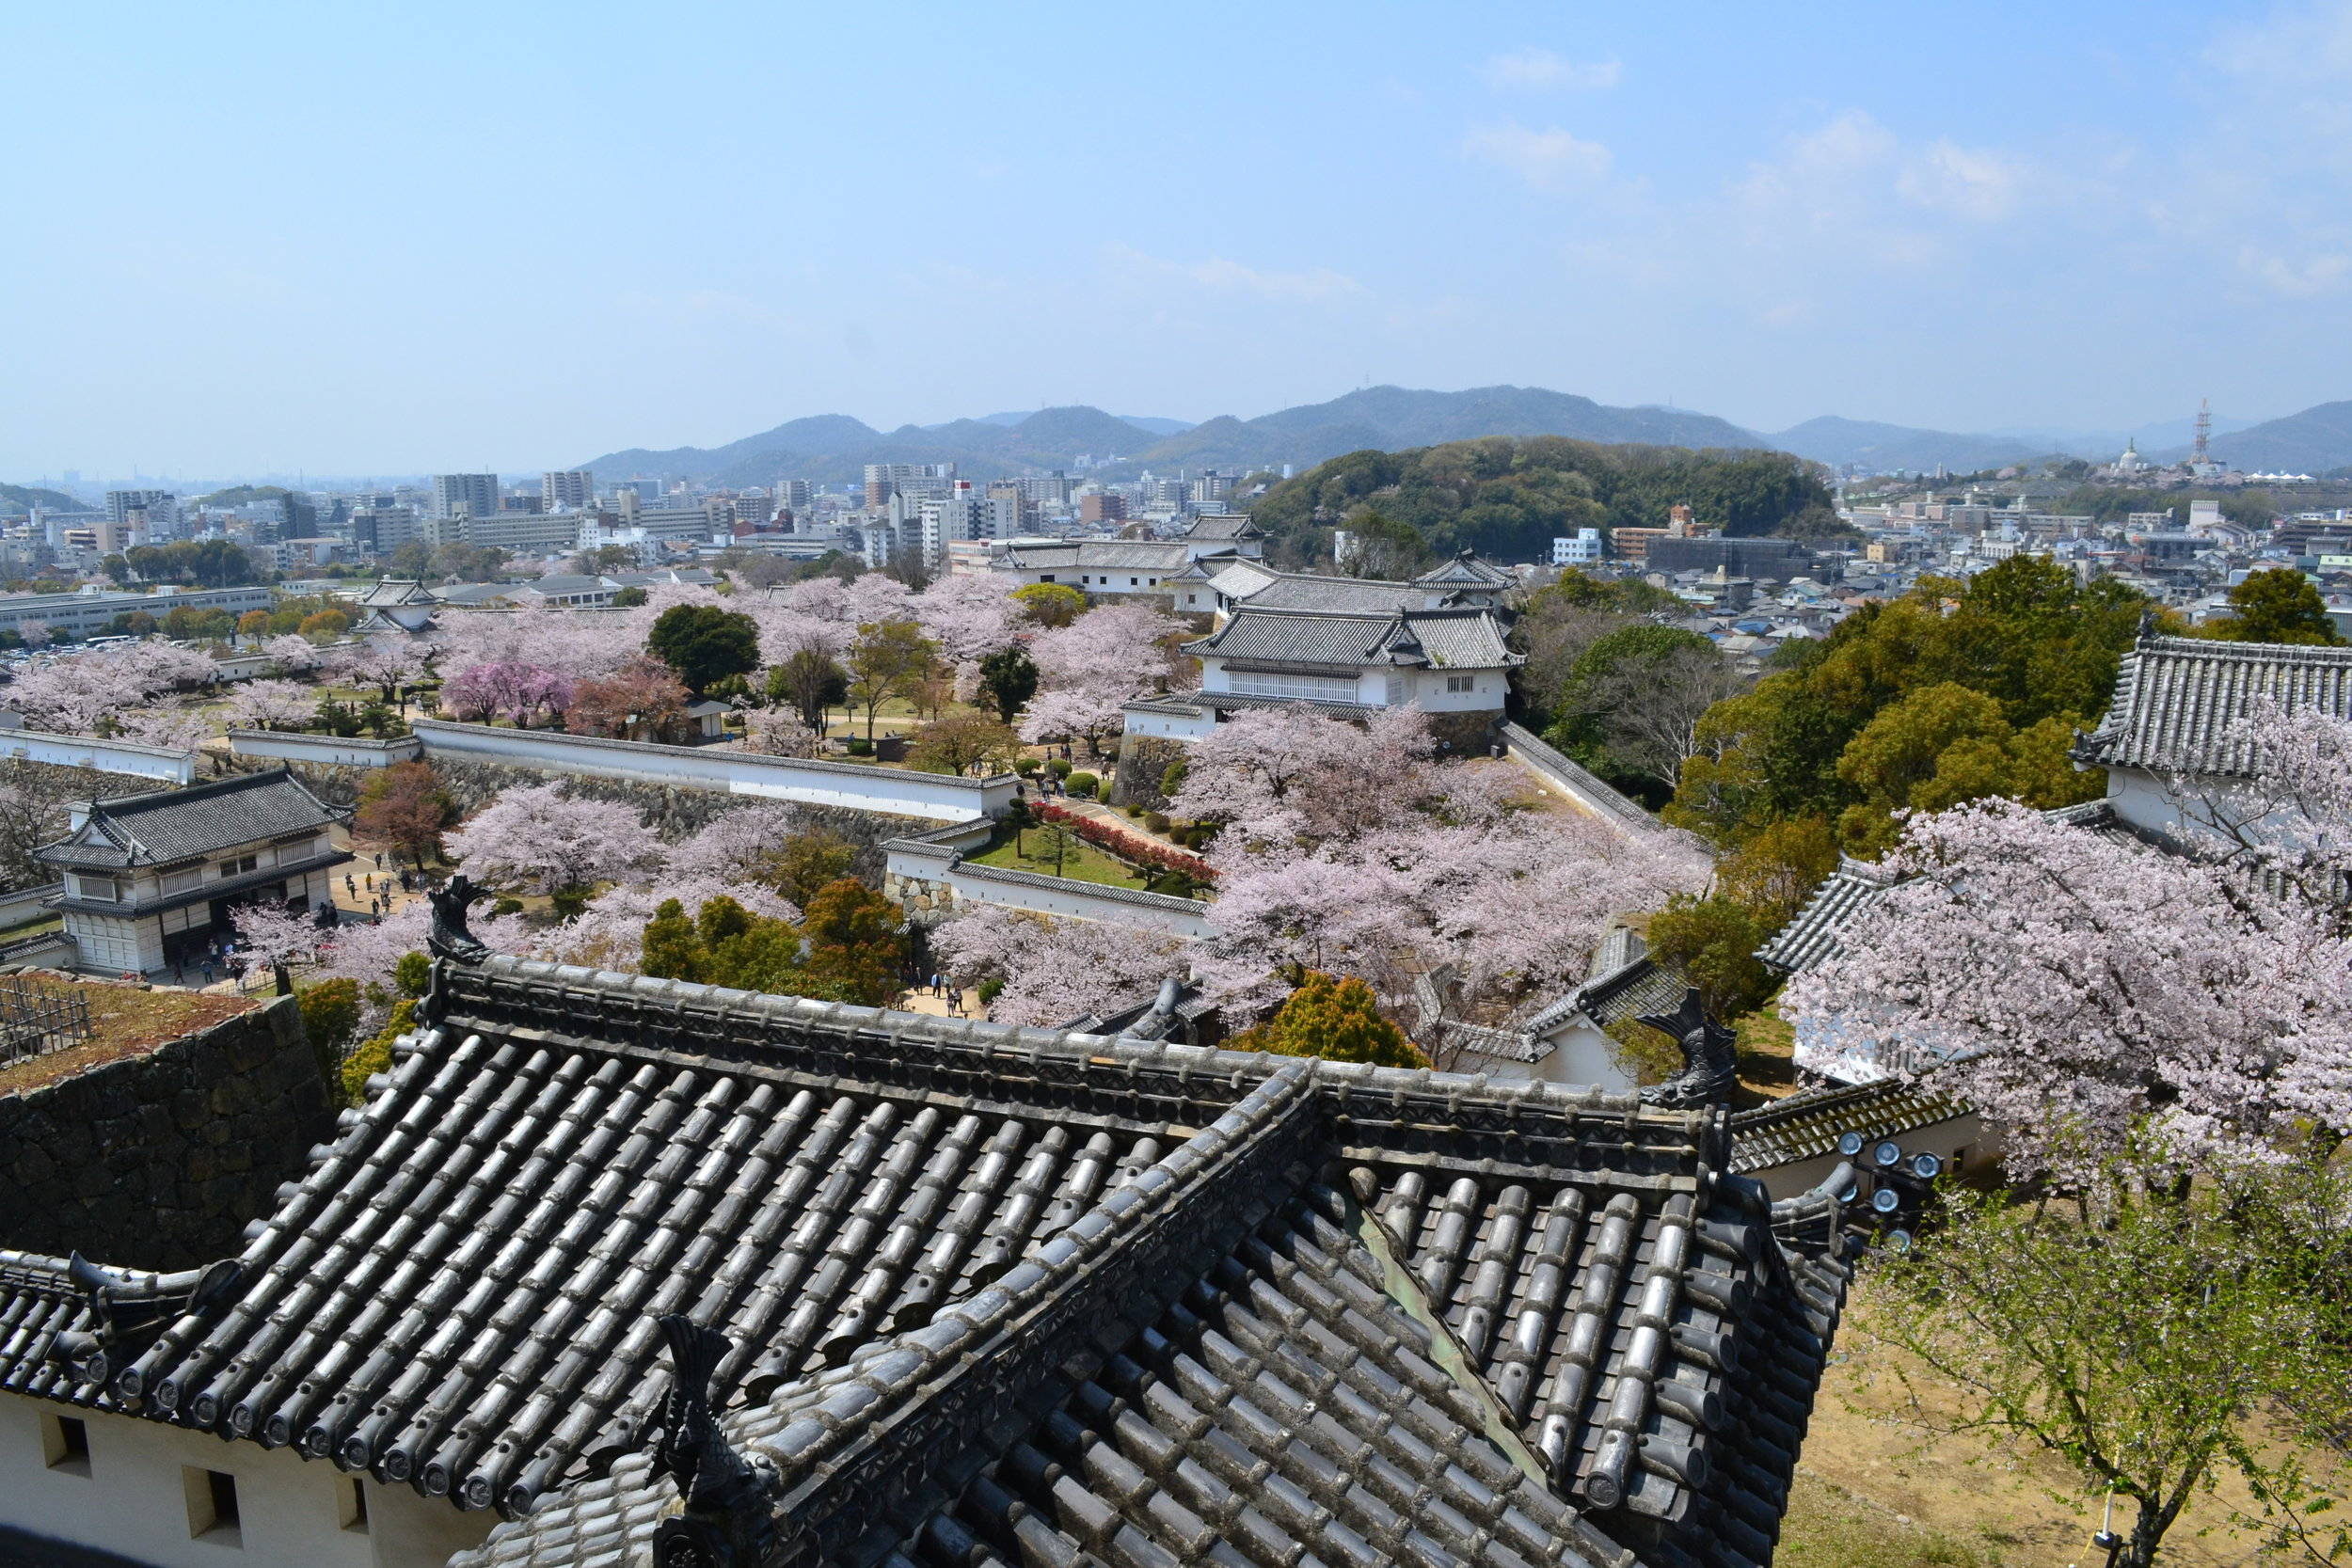 Looking out at the city of Himeji from inside the castle. You can see many cherry blossom trees, and the park I mentioned earlier in the back of the photo.